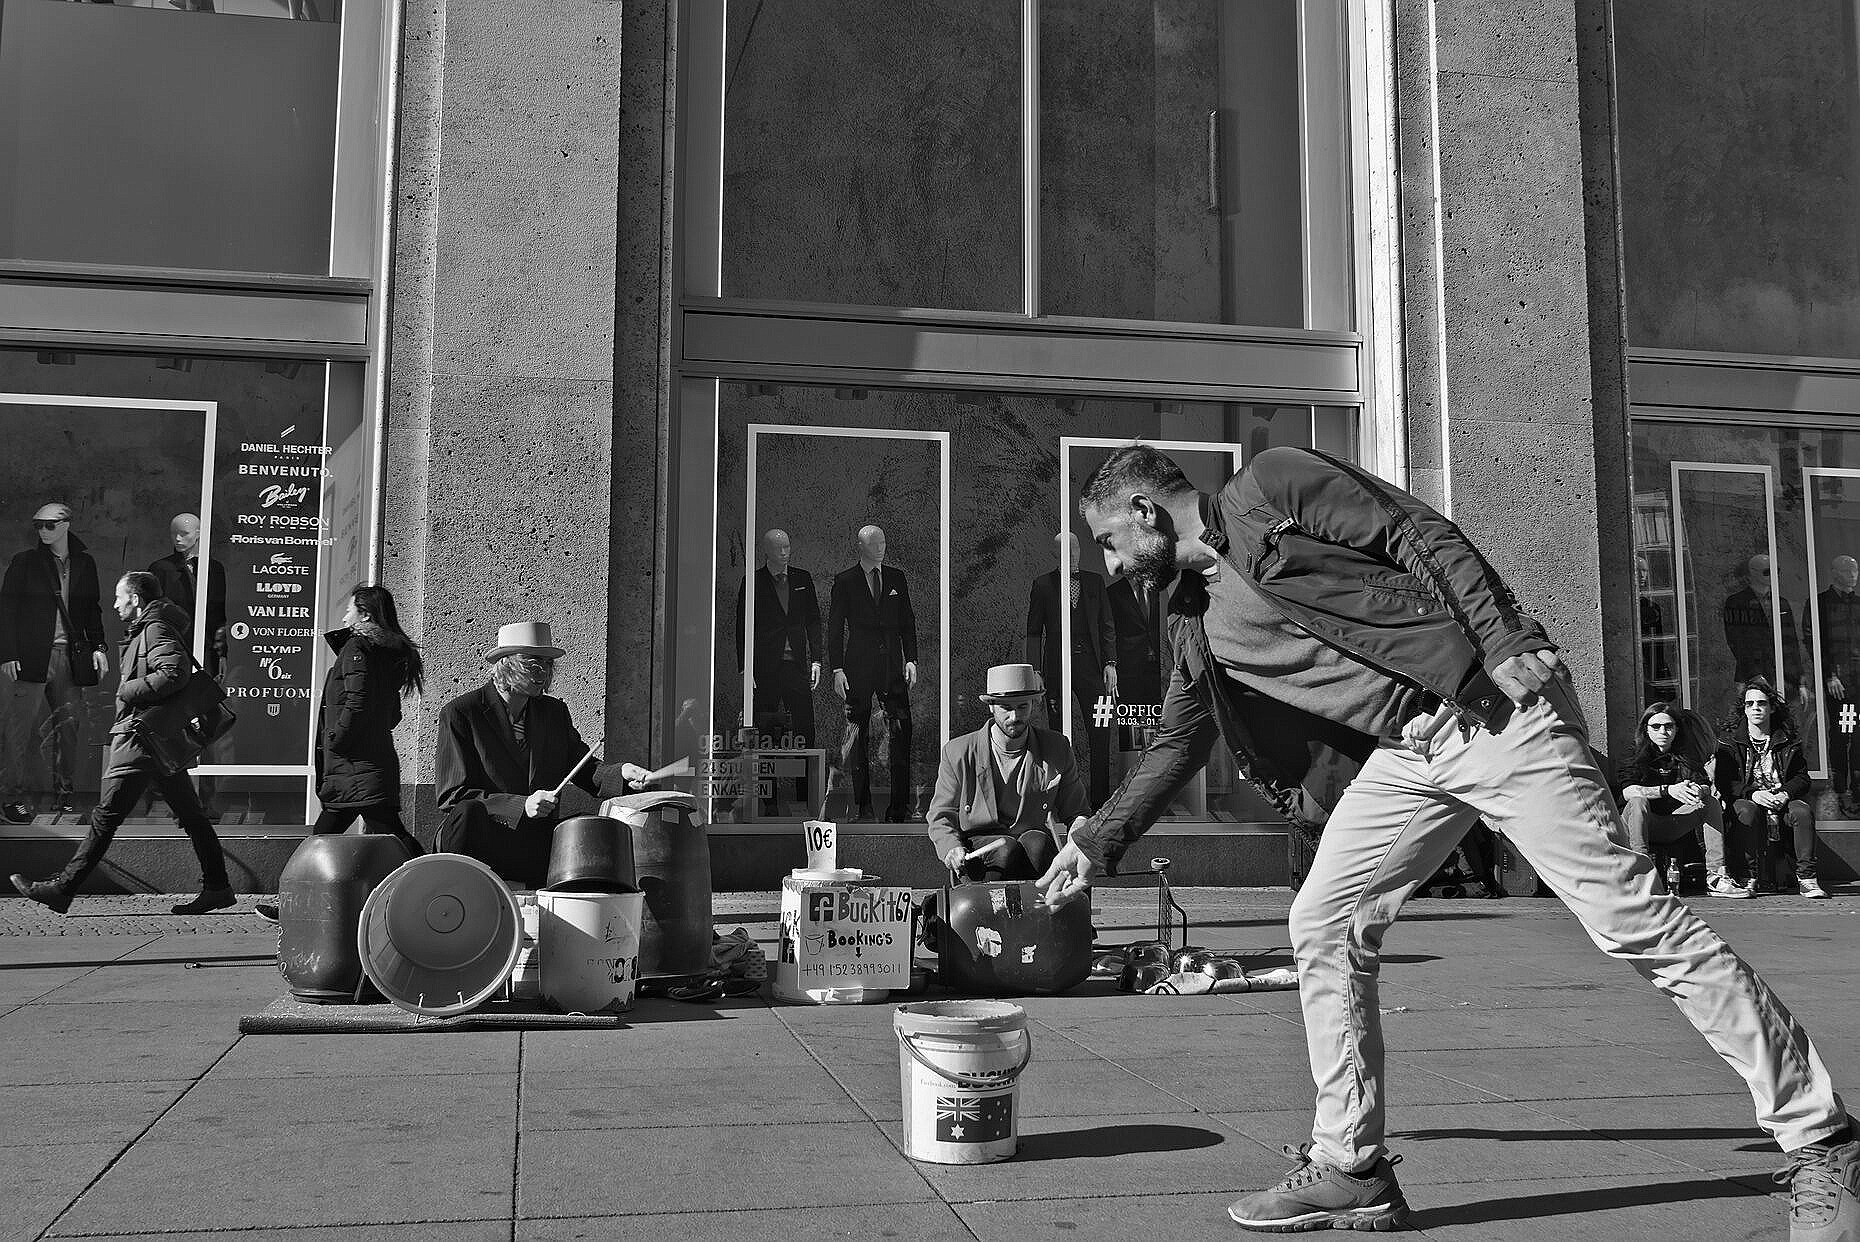 Alexanderplatz, Berlin, with street musicians and a man leaving them a bit of money